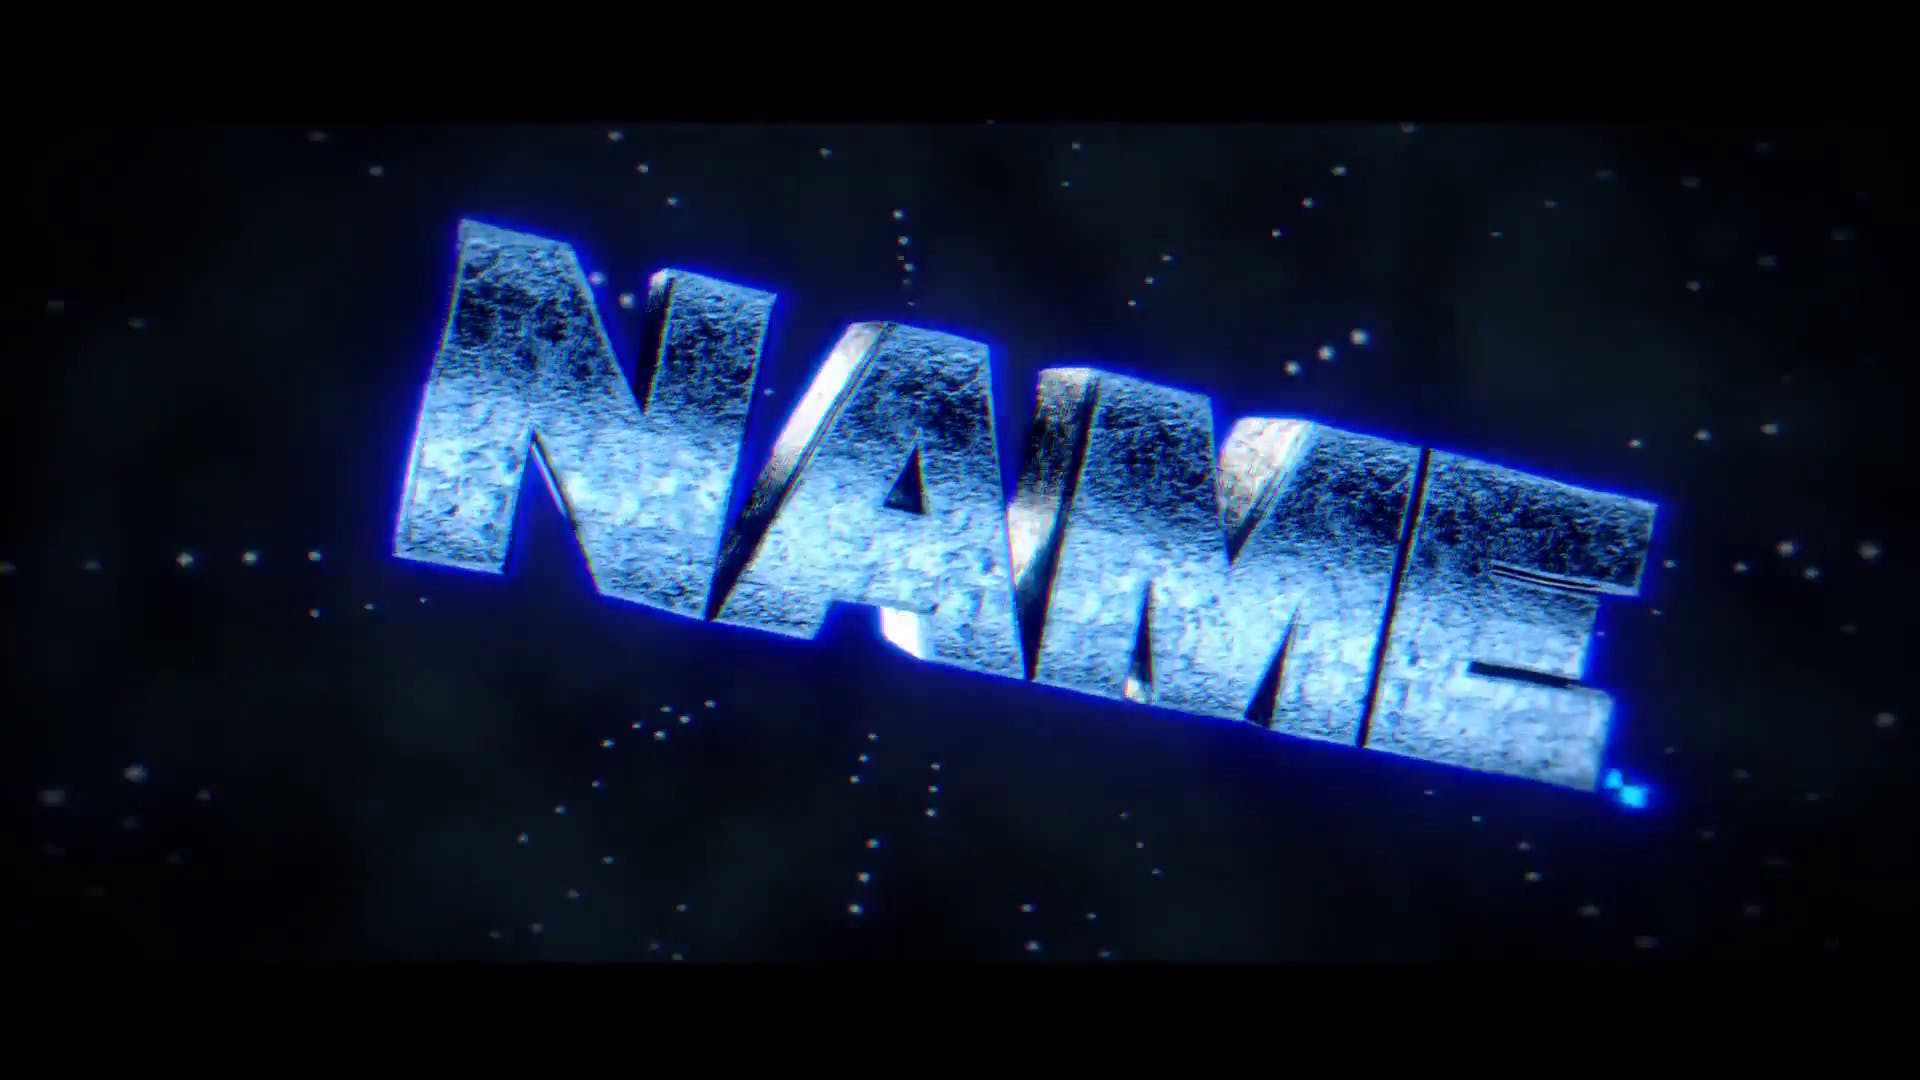 Sparks Blue Blender ONLY Intro Template FREE DOWNLOAD